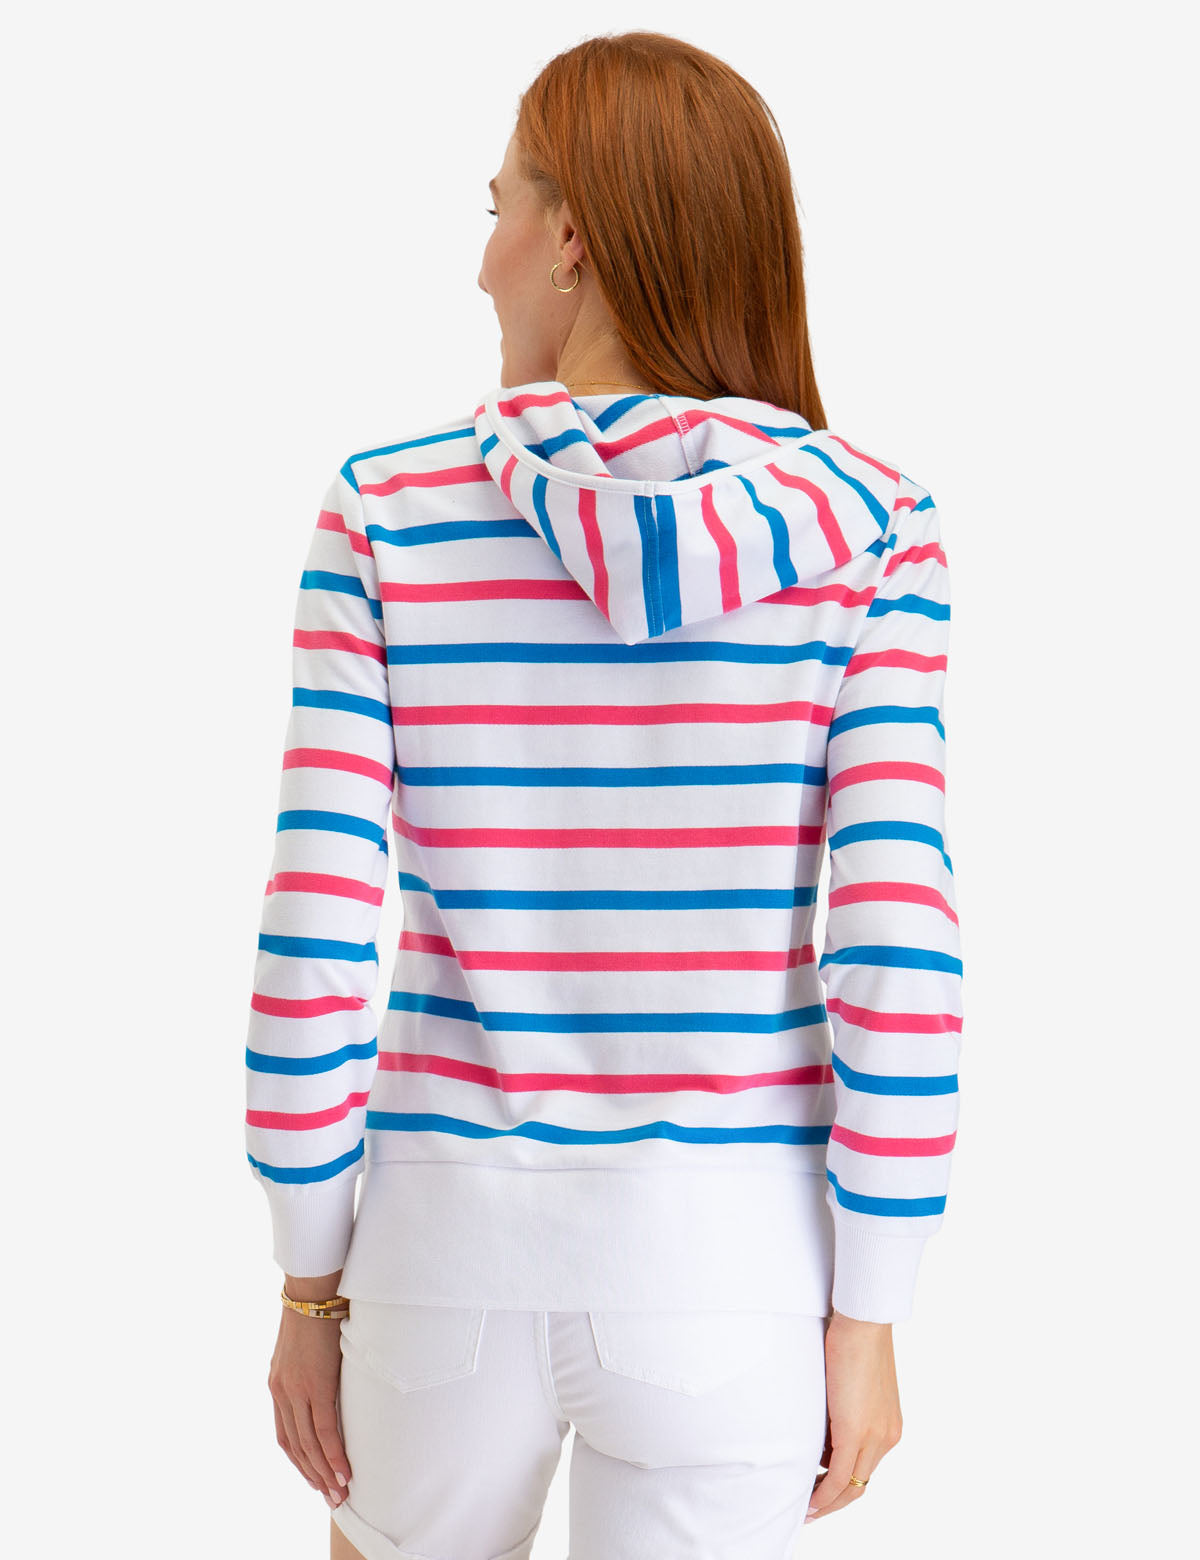 STRIPED SWEATSHIRT - U.S. Polo Assn.